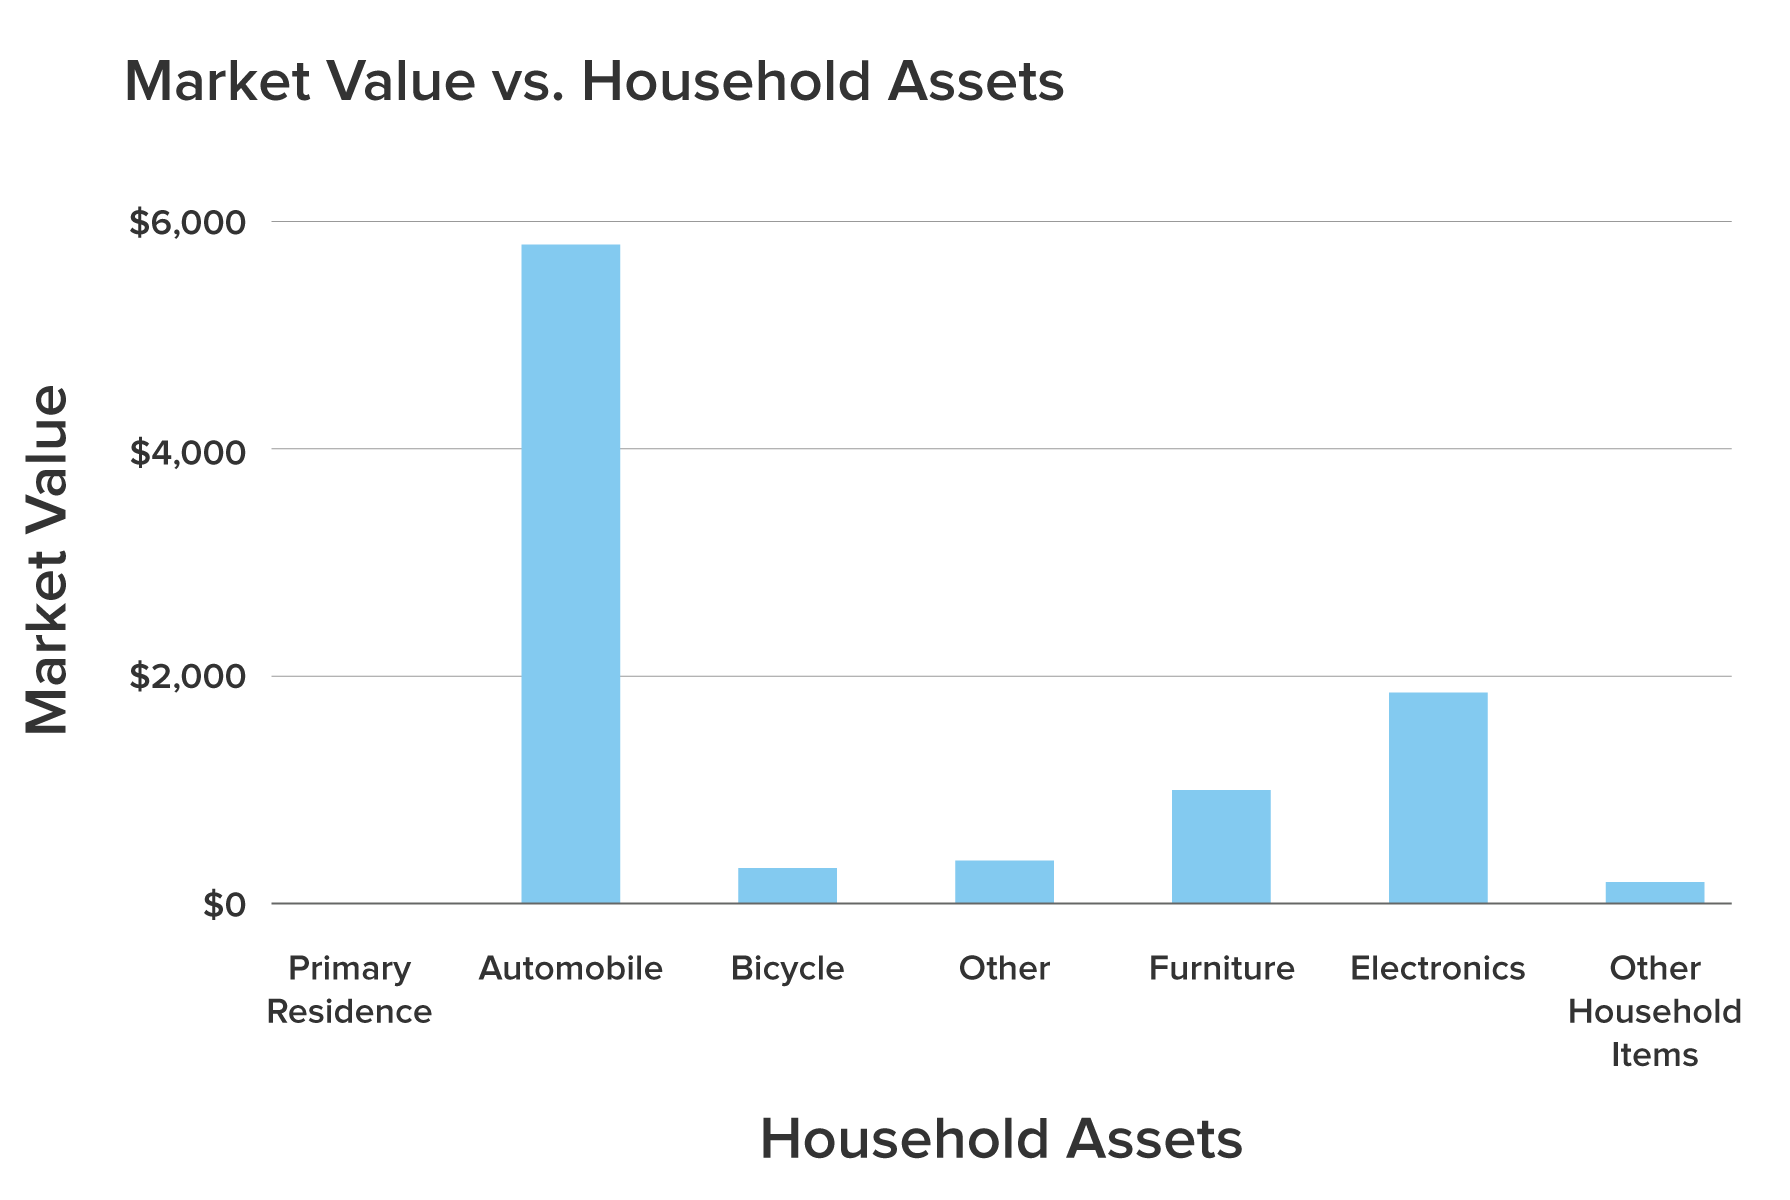 a column chart showing the market value of several household assets